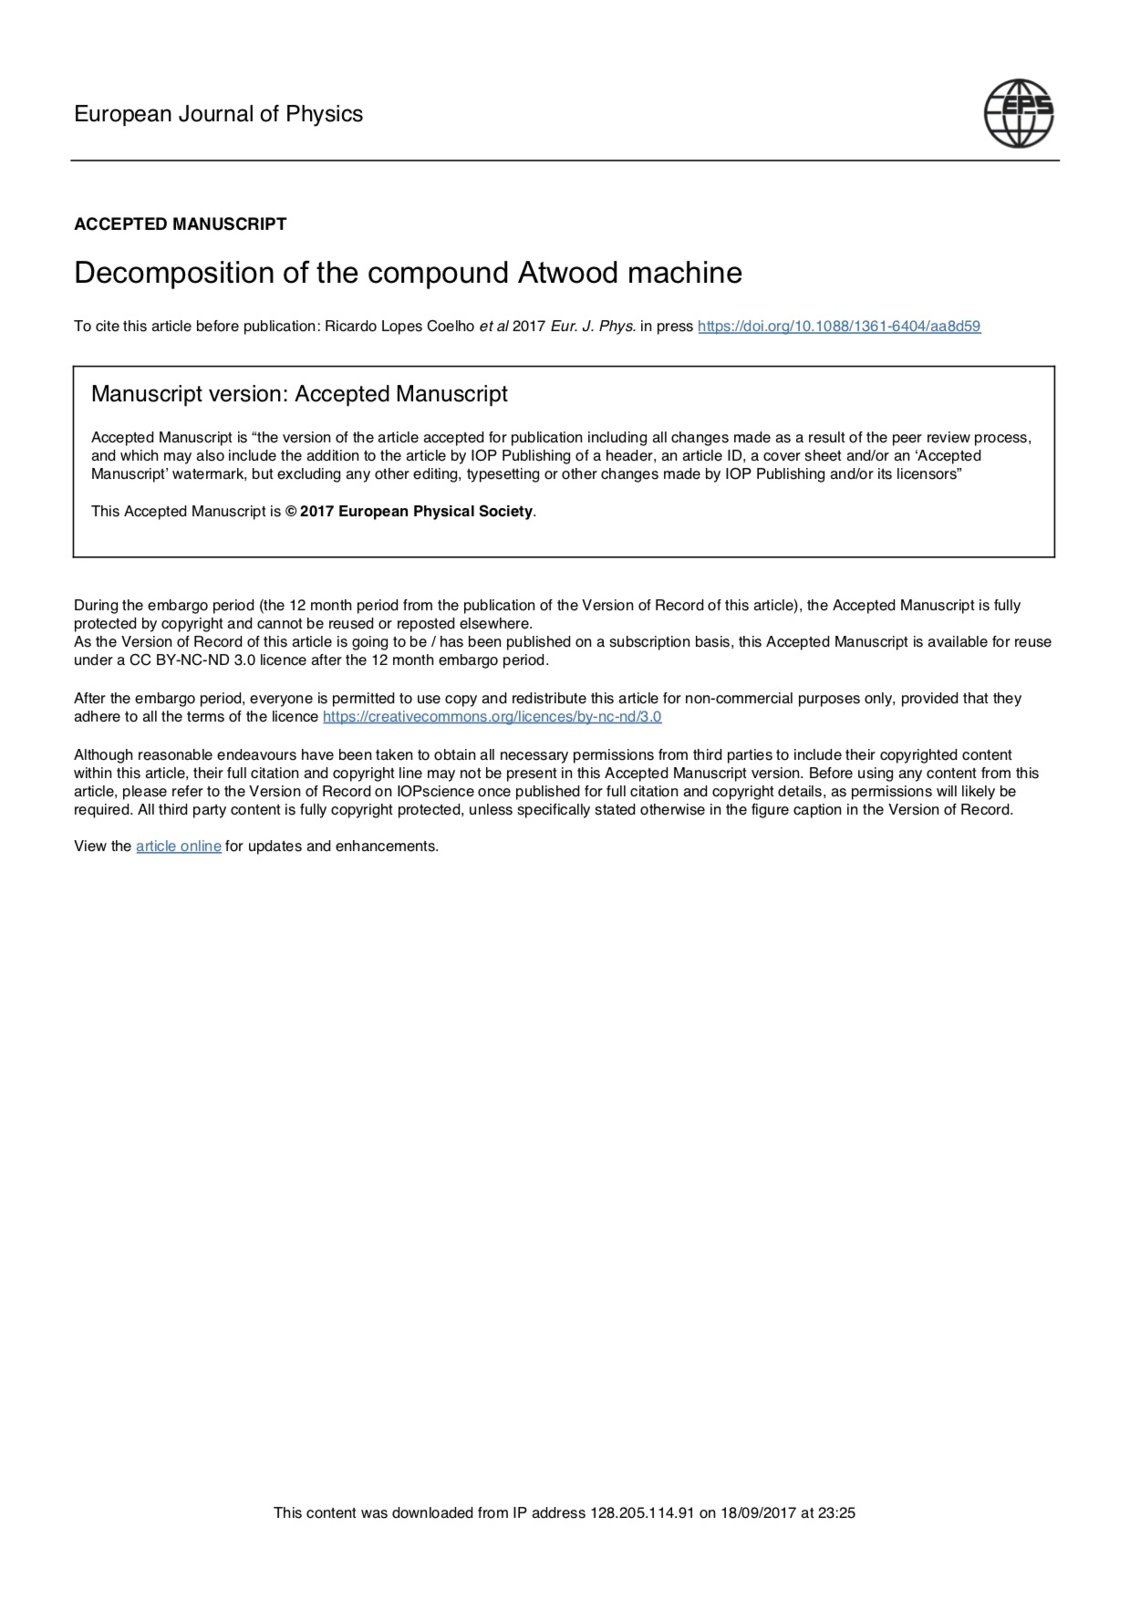 Decomposition of the compound Atwood machine, Capa